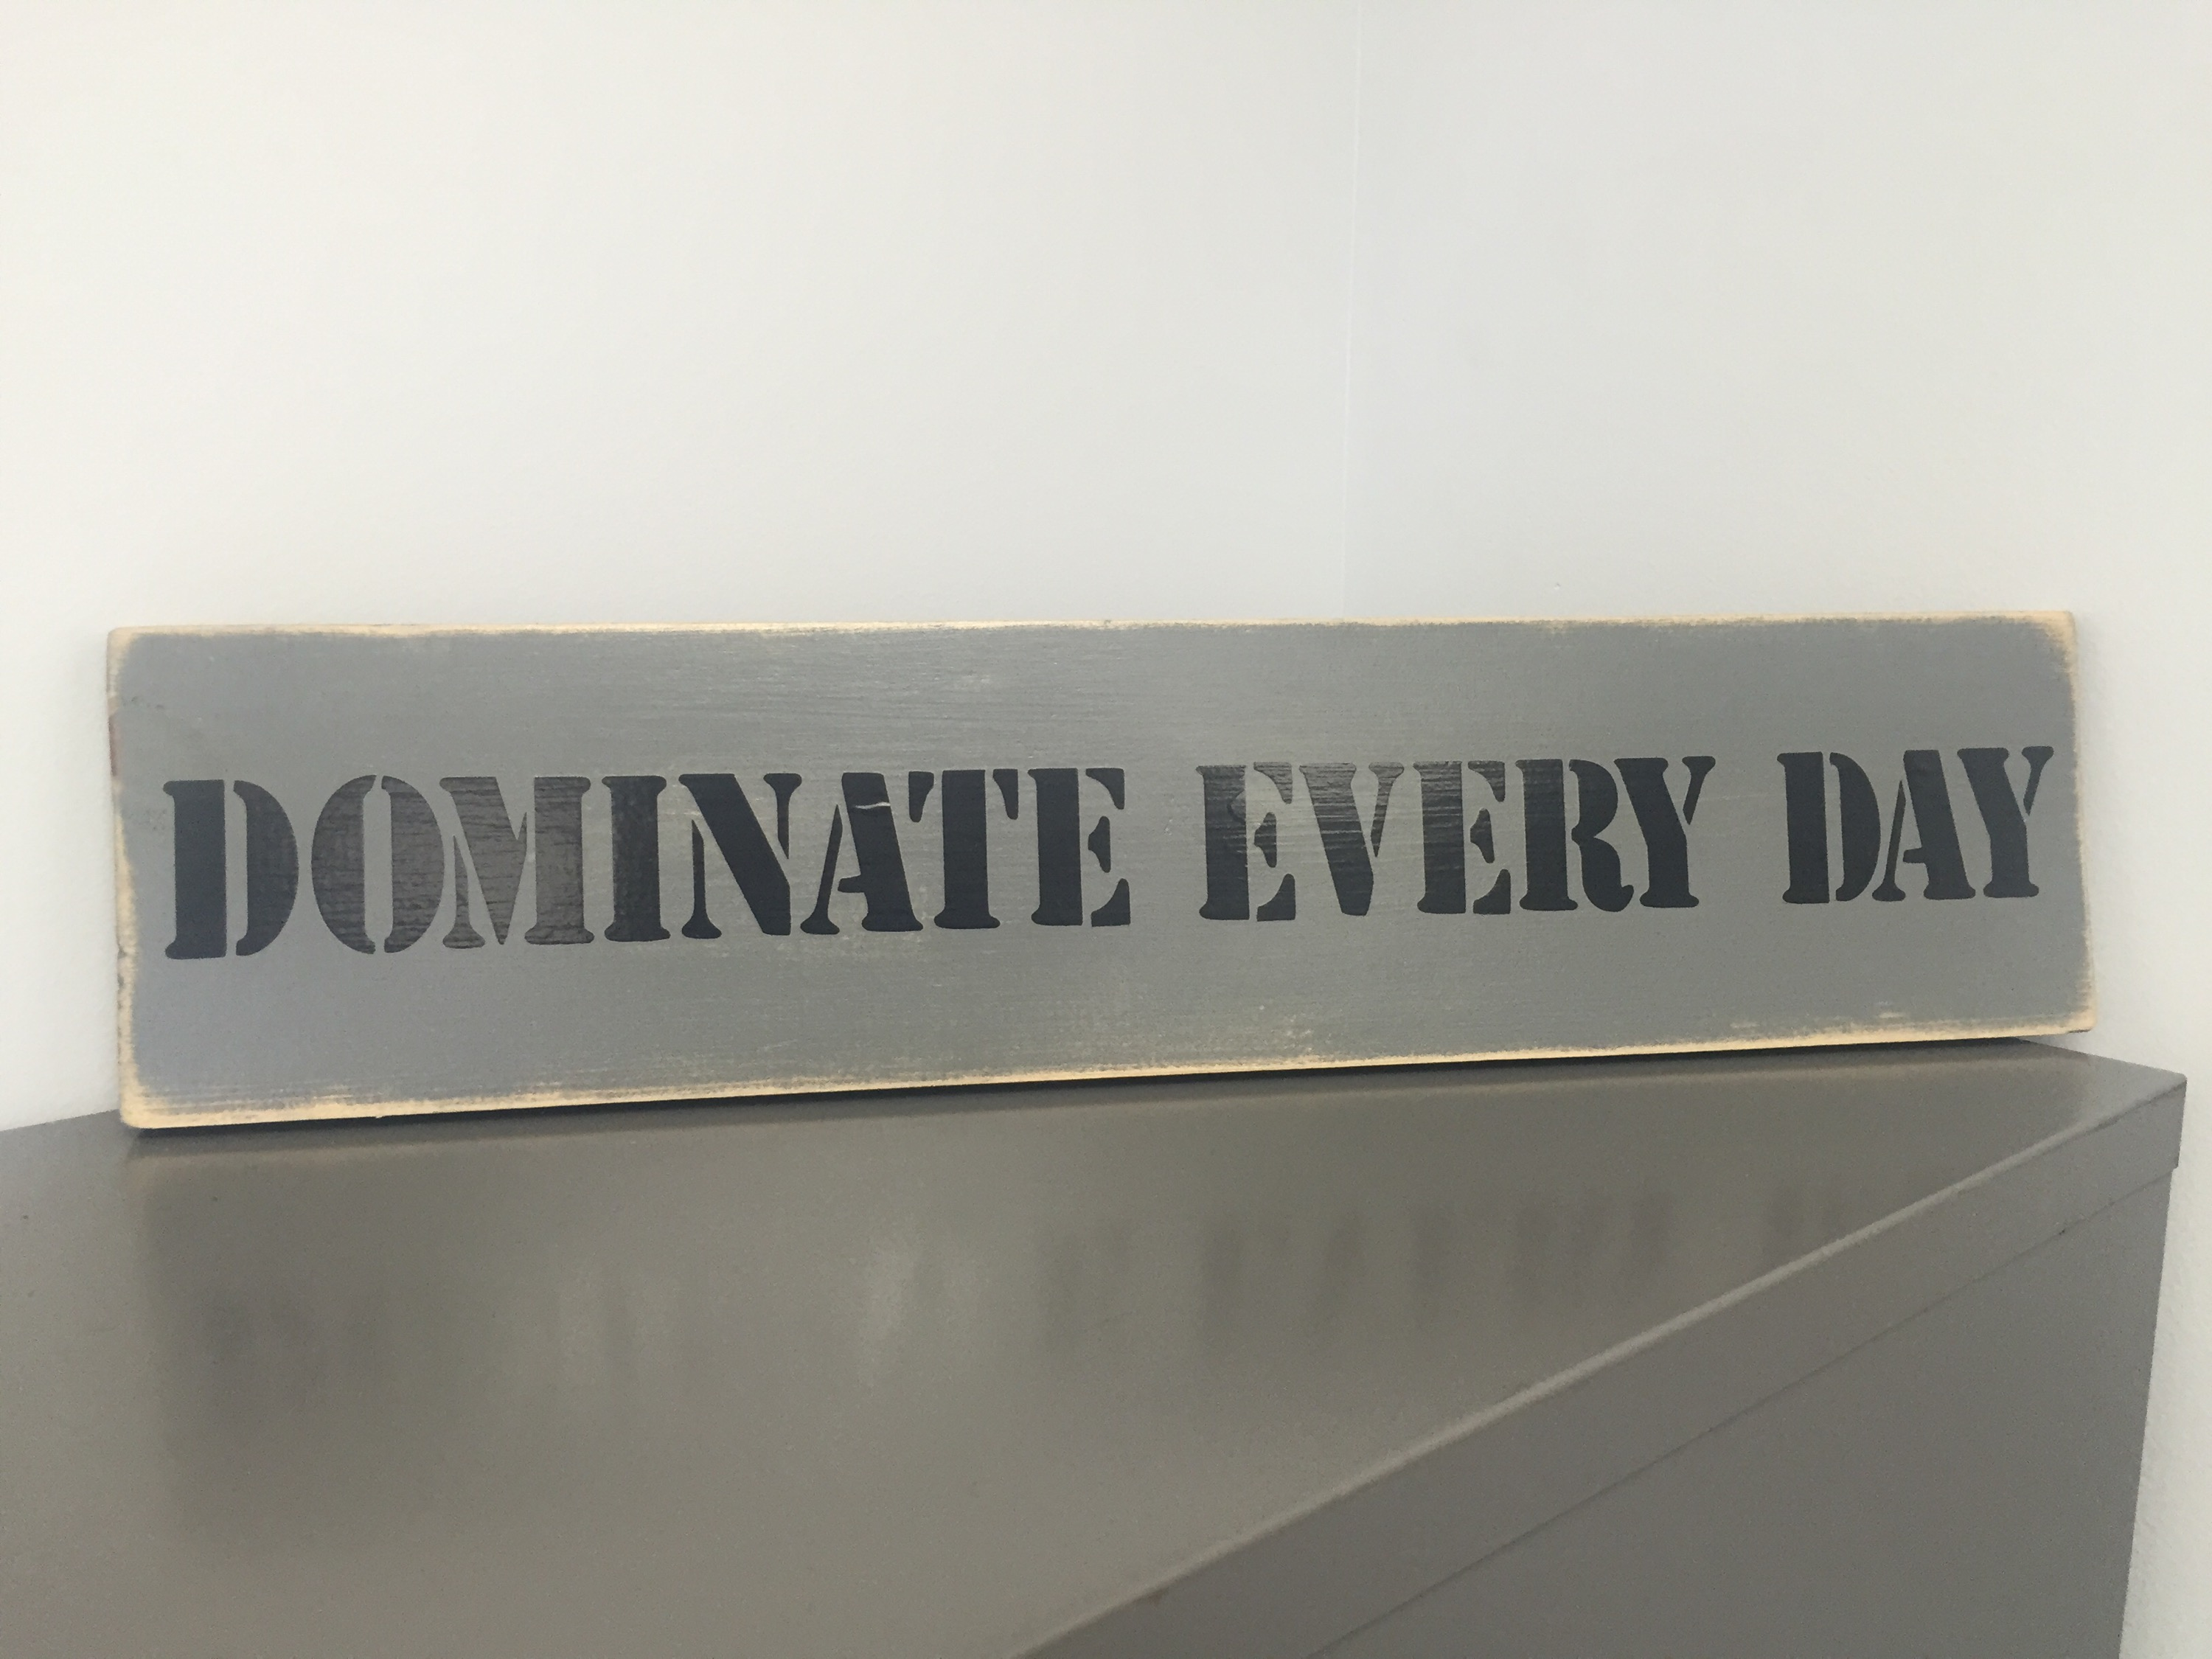 Dominate Every Day